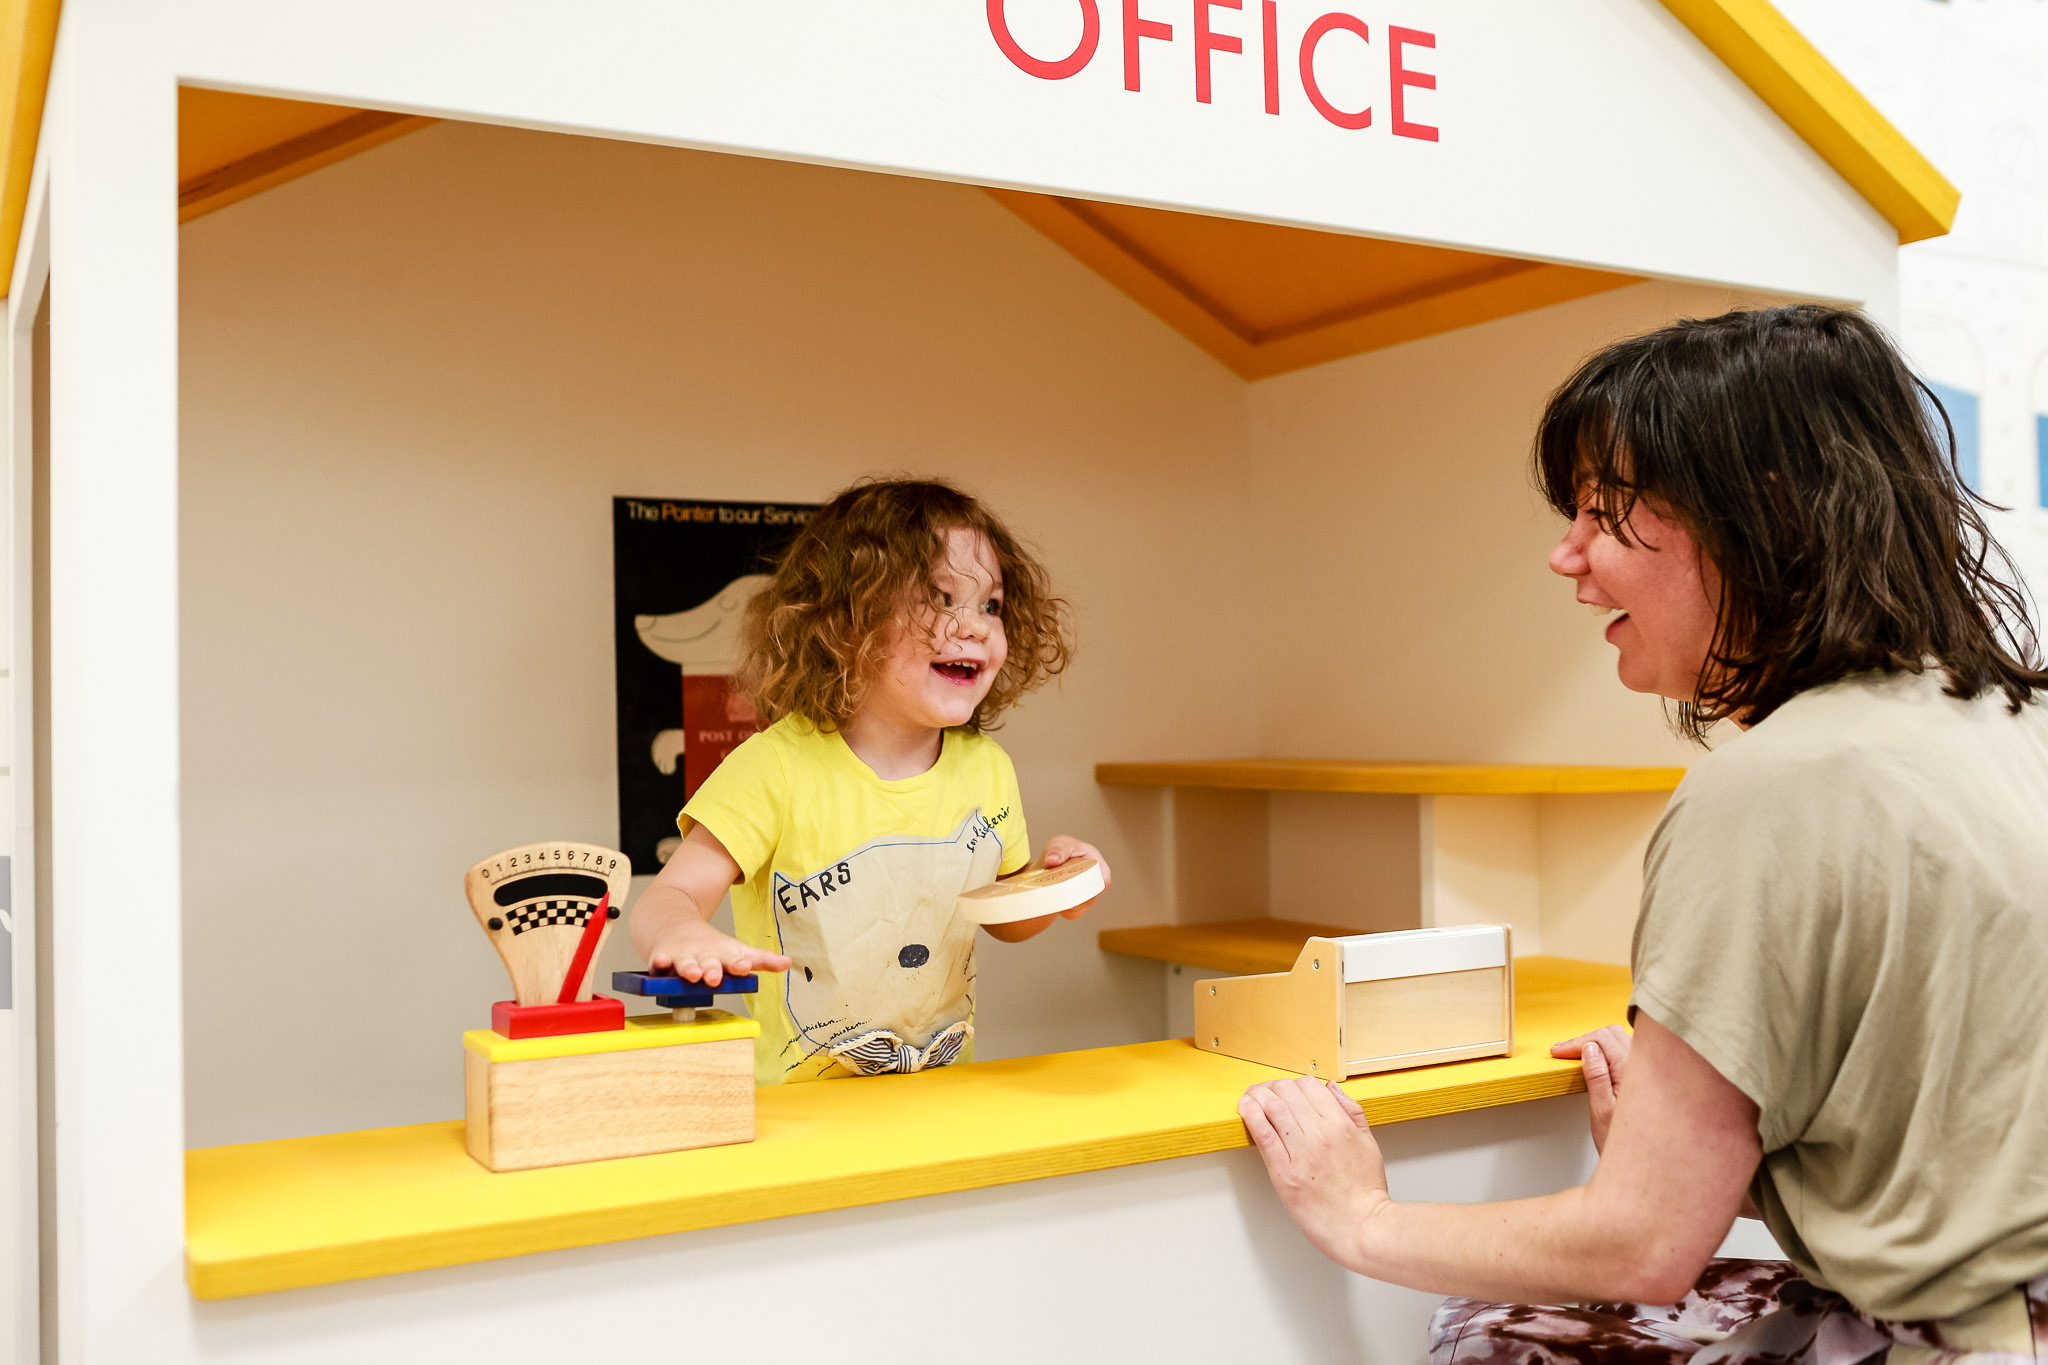 Next customer please! Use role play to help customers weigh parcels and stamp letters.